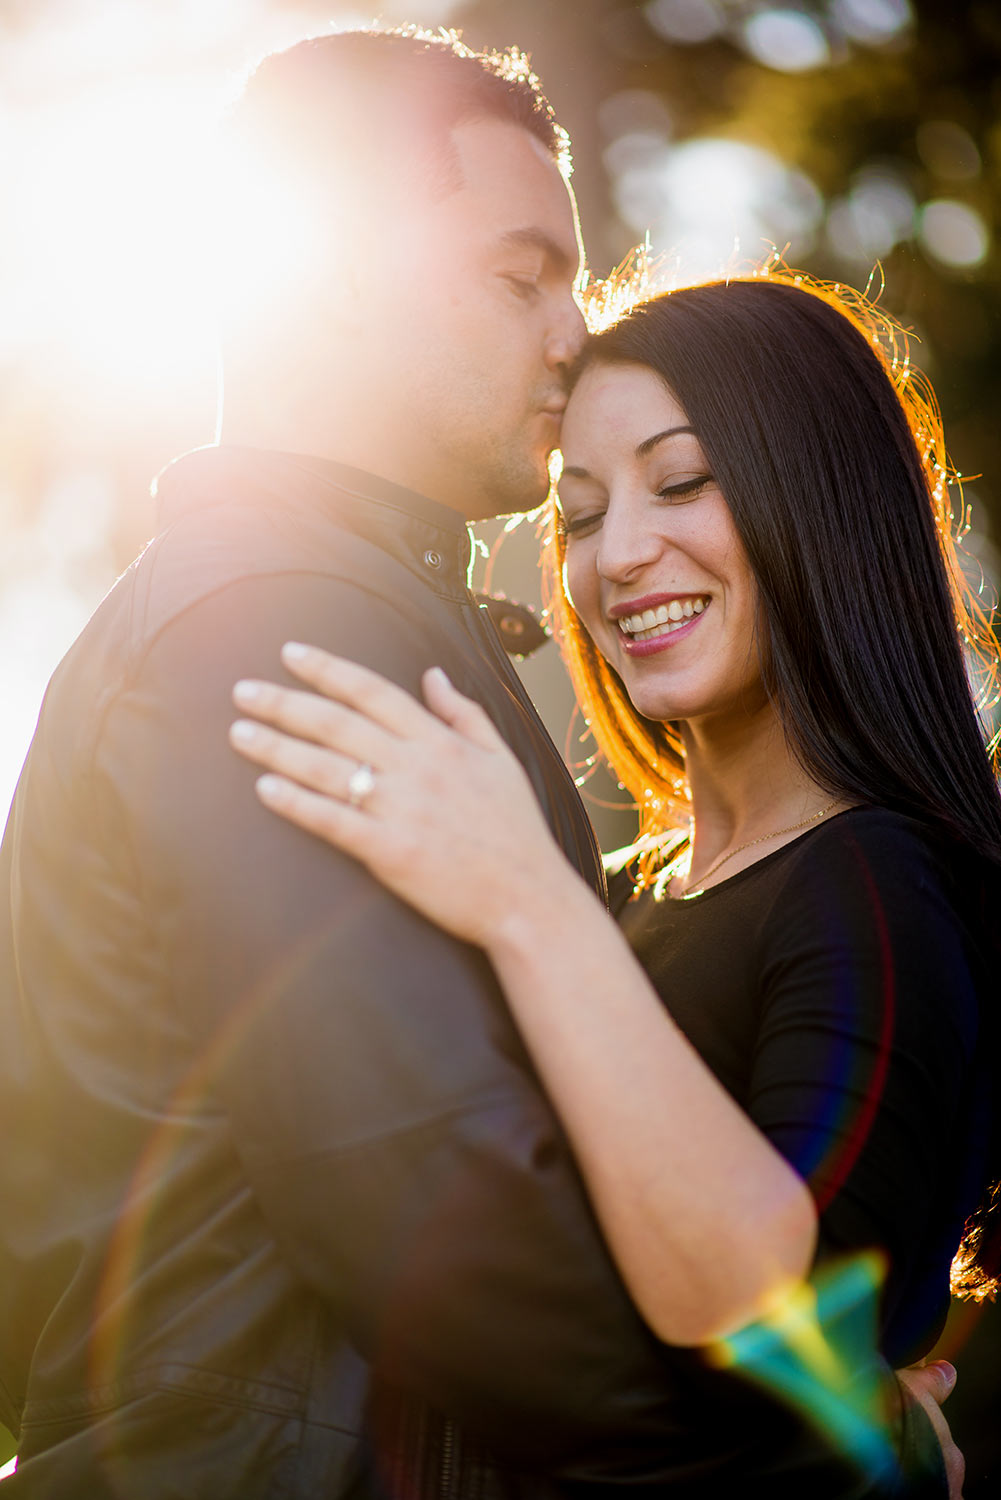 San Francisco engagement photography by Marc Flores